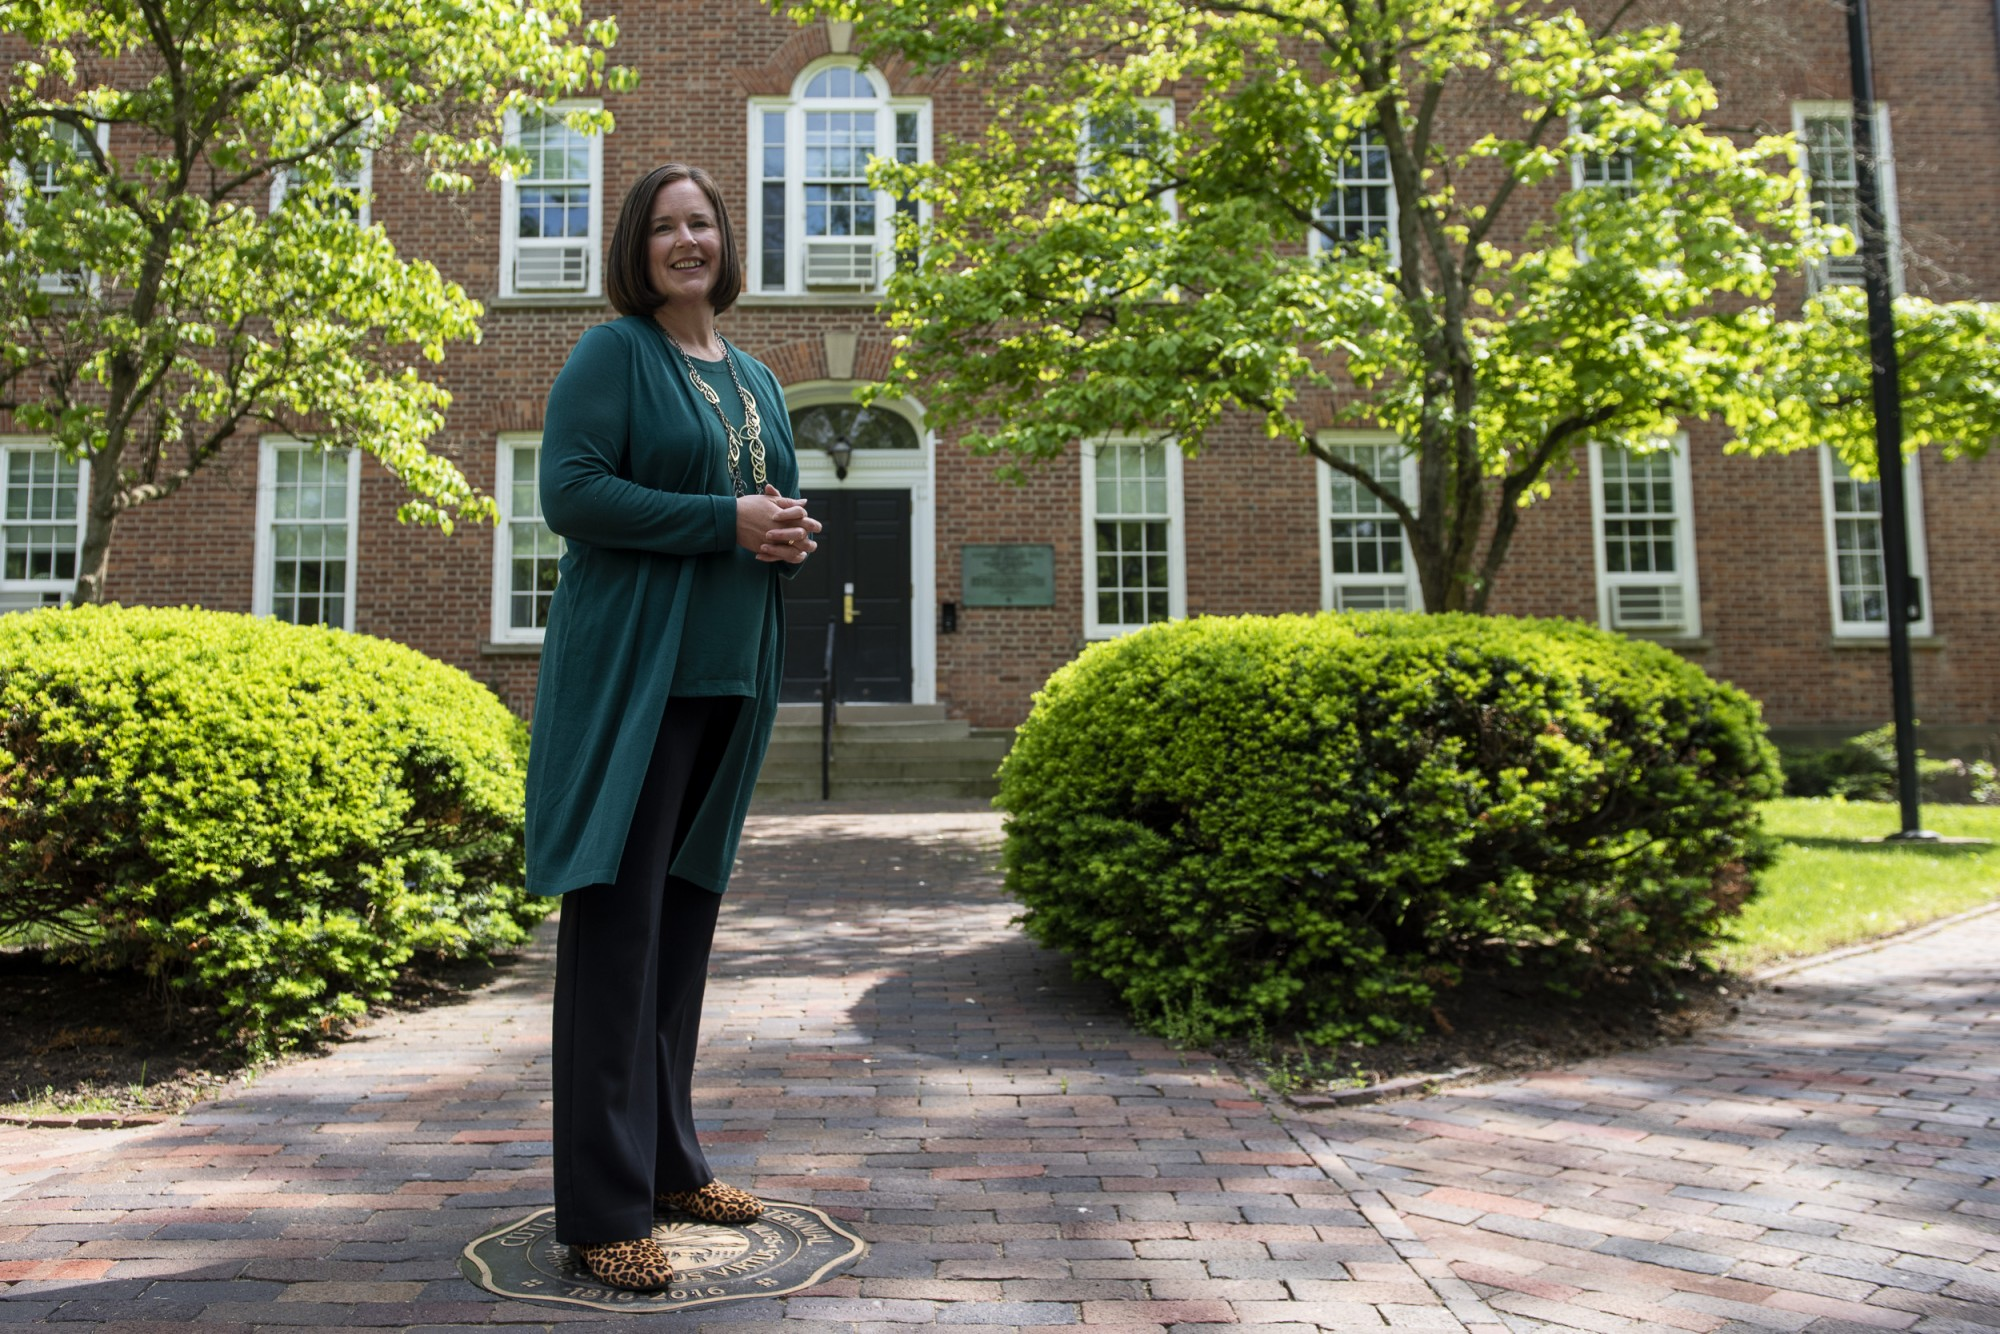 Ohio University's Interim Vice President for Student Affairs, Jenny Hall- Jones poses for a portrait outside of Cutler Hall on May 18, 2021.